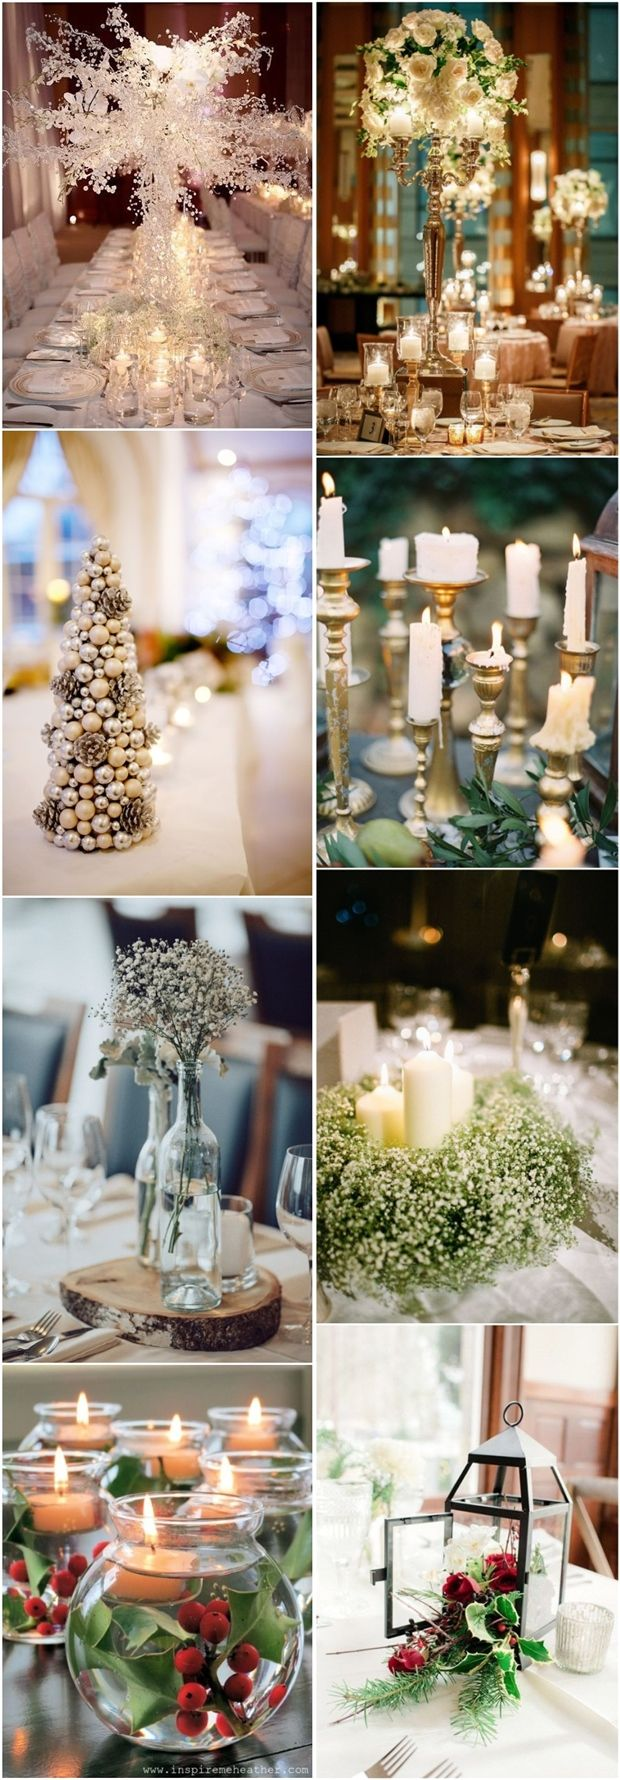 Best 25+ Silver wedding centerpieces ideas on Pinterest | Wood slab  centerpiece, Country wedding decorations and Simple wedding decorations